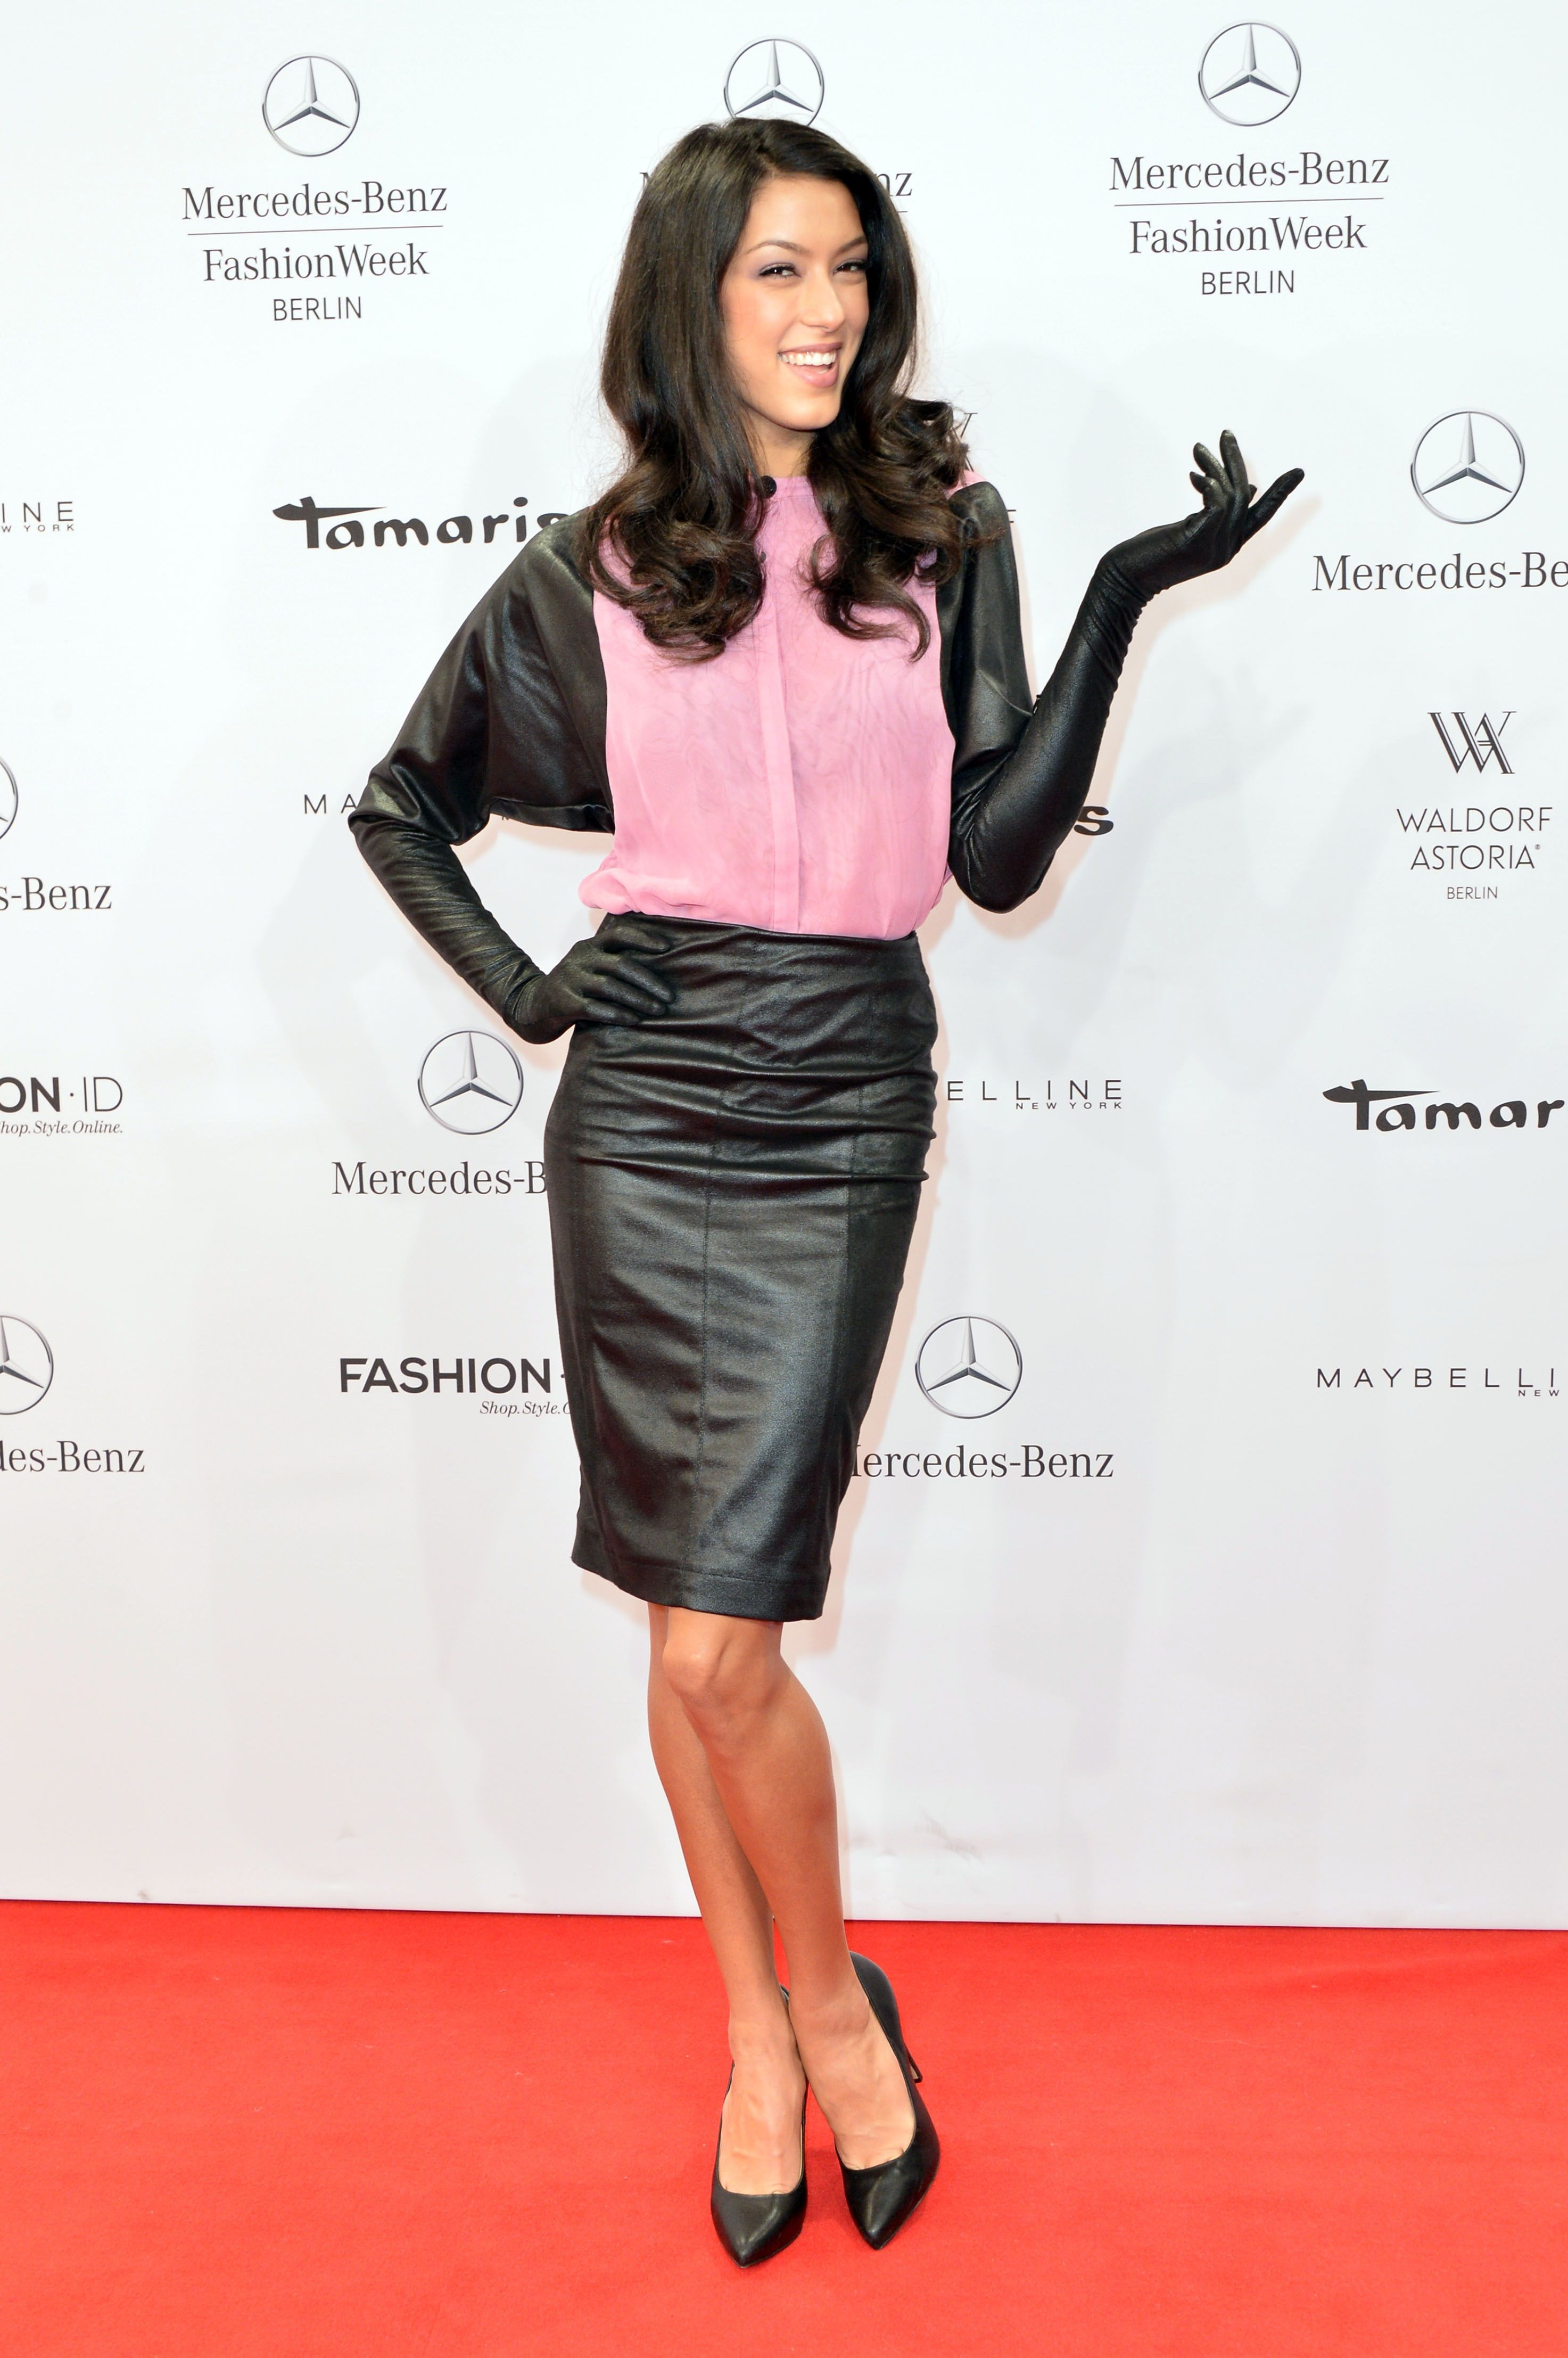 Pin on Celebs lovely in leather (pants, skirts, dresses